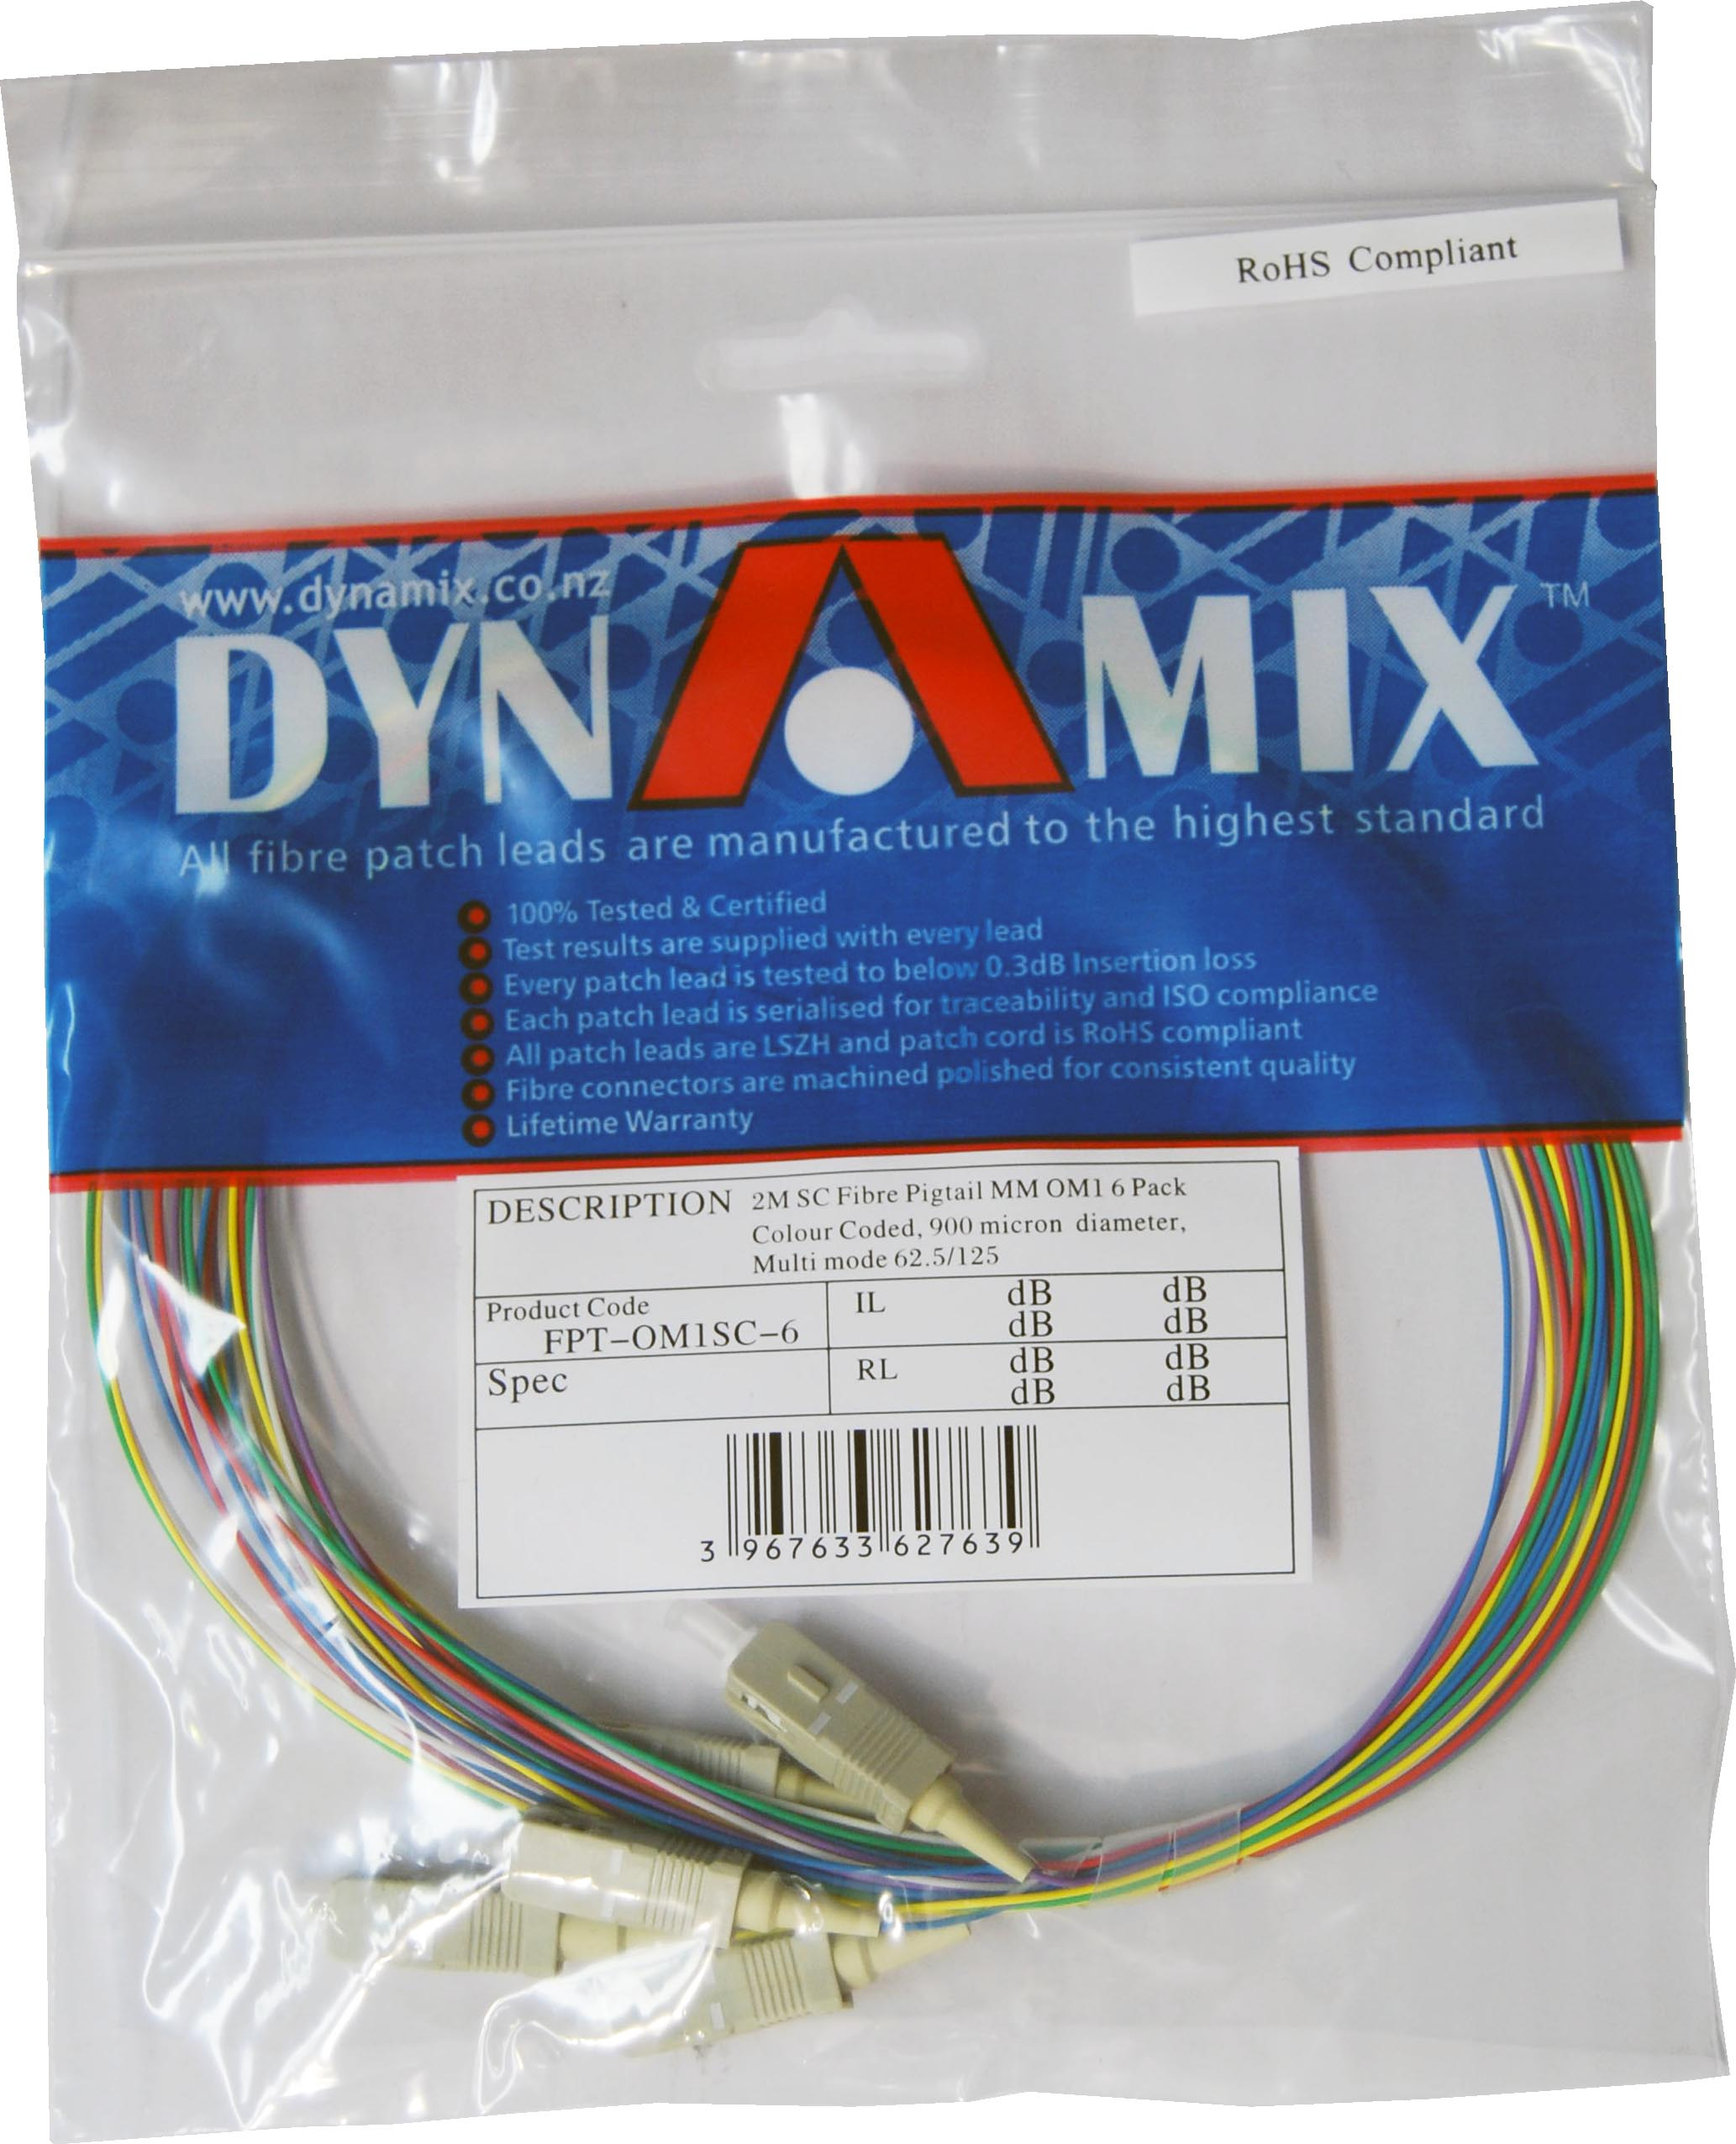 DYNAMIX 2M SC Pigtail OM3 6 Pack Colour Coded, 900um Multimode Fibre, Tight buffer